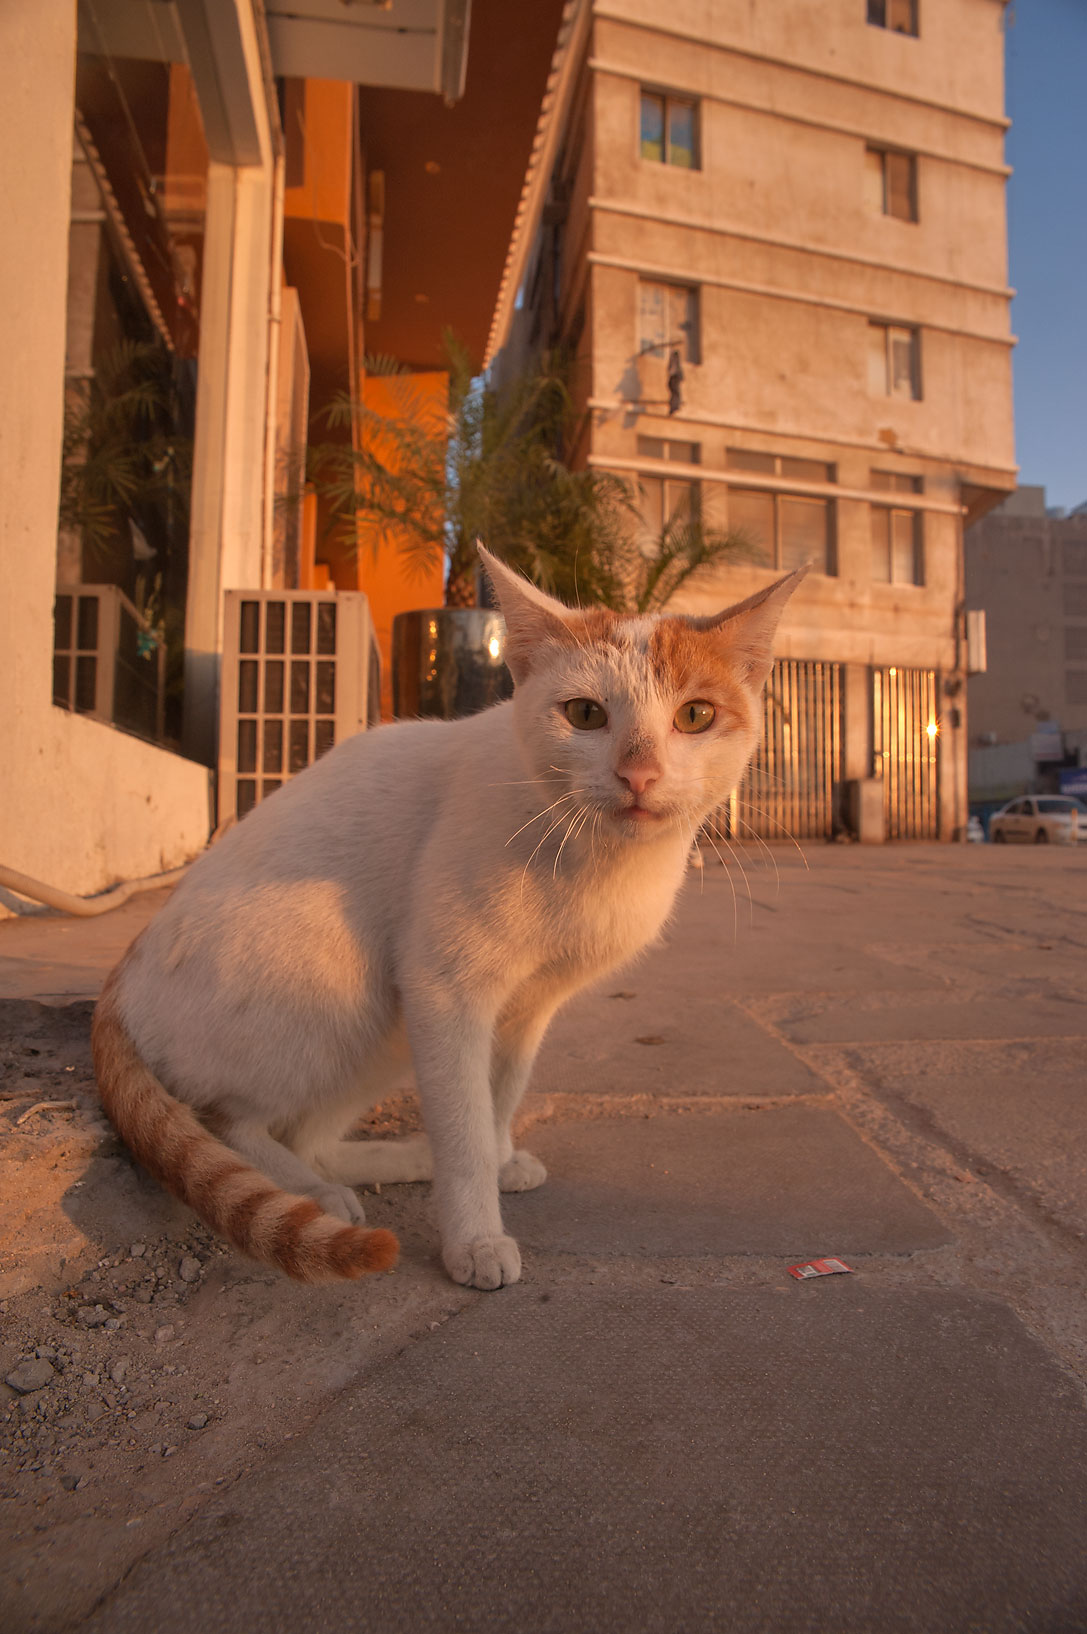 Street cat at sunrise in Musheirib neighborhood. Doha, Qatar